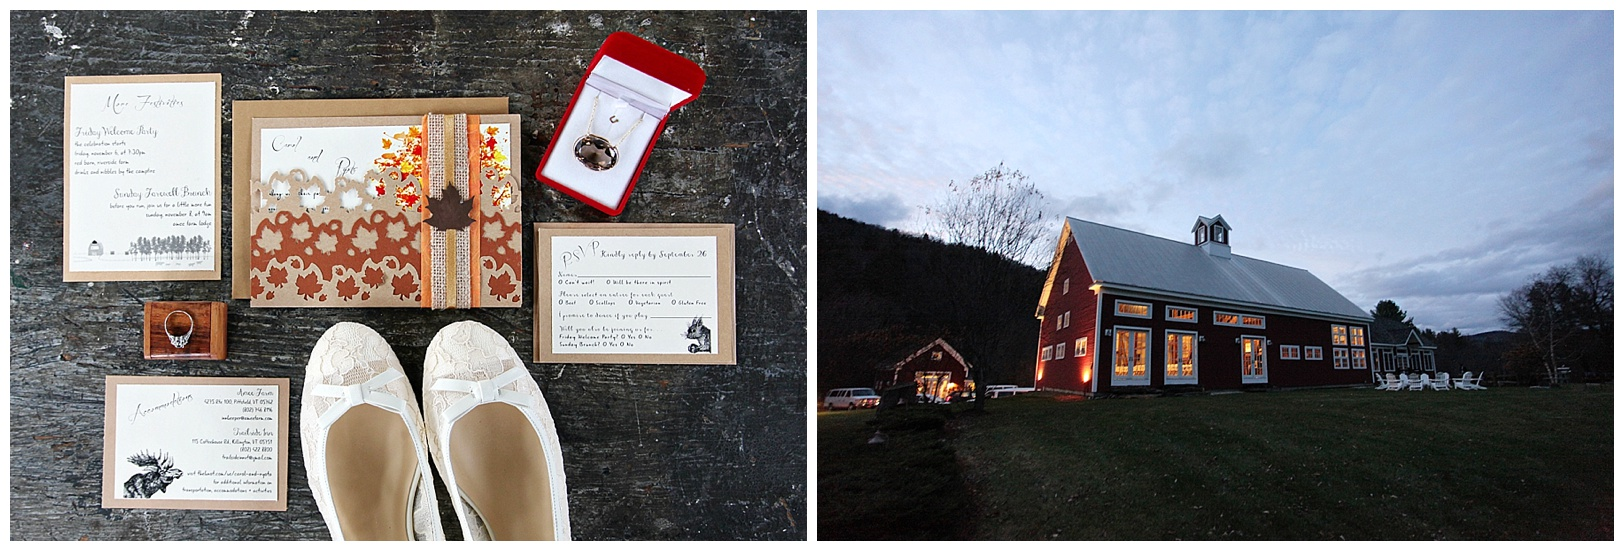 Riverside_Vermont_Wedding_Venue_0077